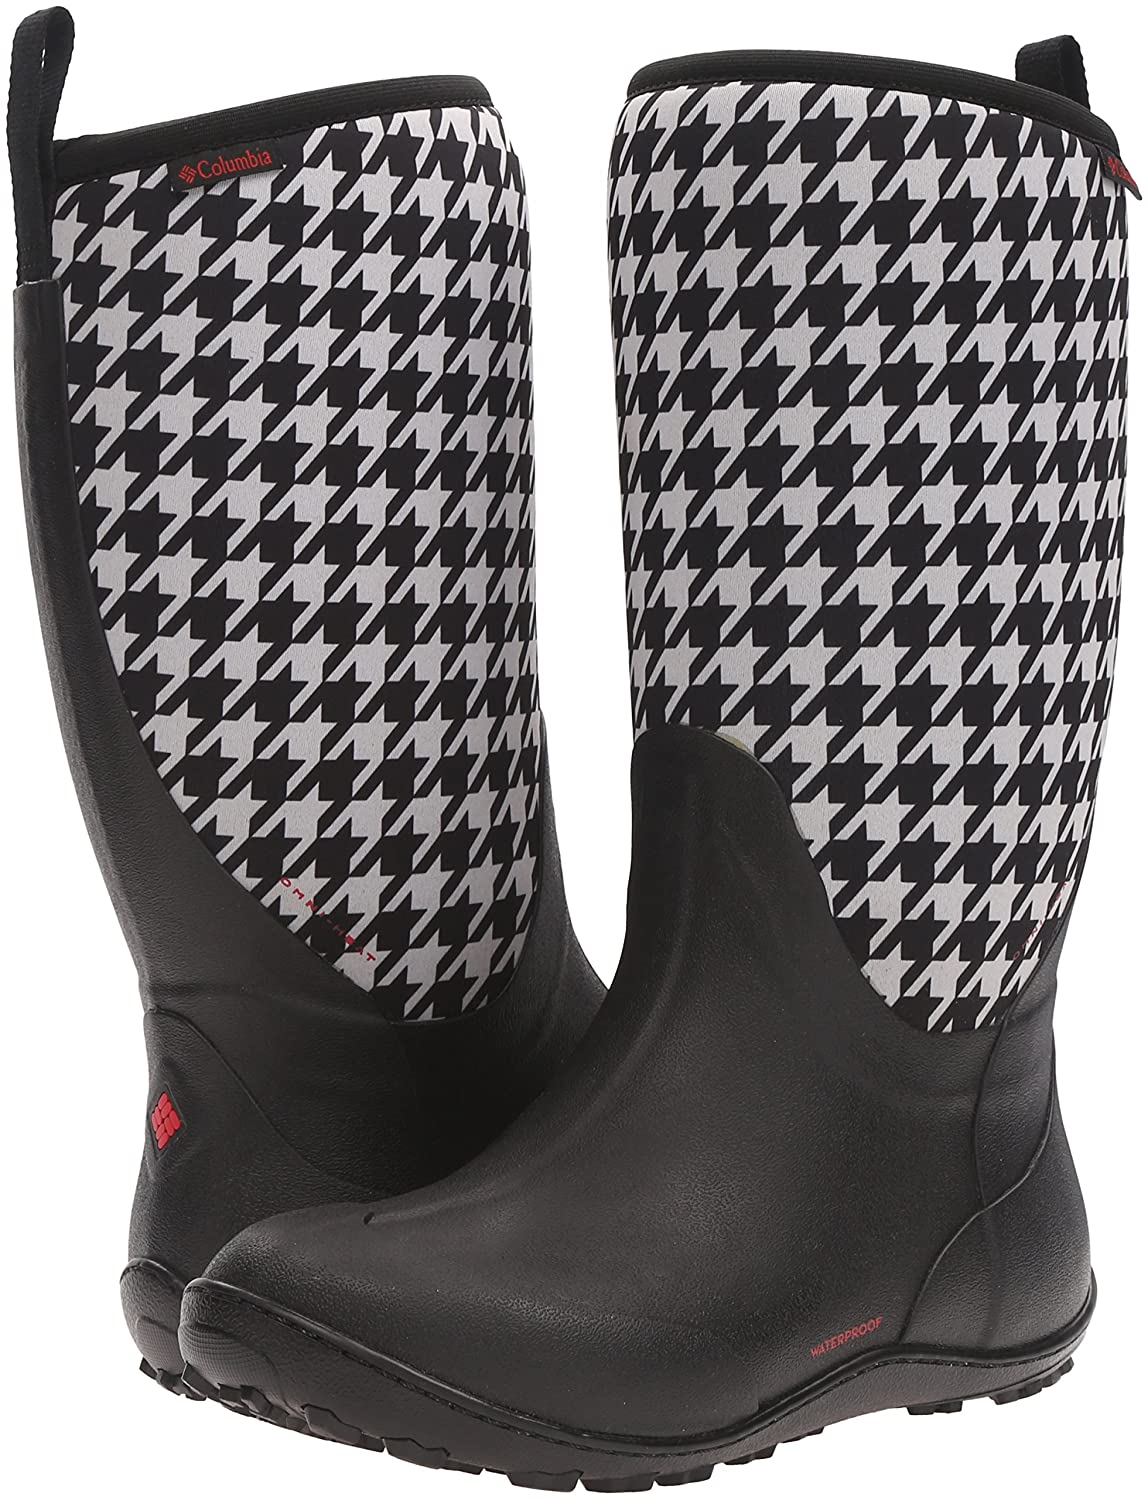 Columbia Women's Snowpow Tall Print 12 Omni-Heat Snow Boot B0183QBTBQ 12 Print B(M) US|Black/Burnt Henna 655b08